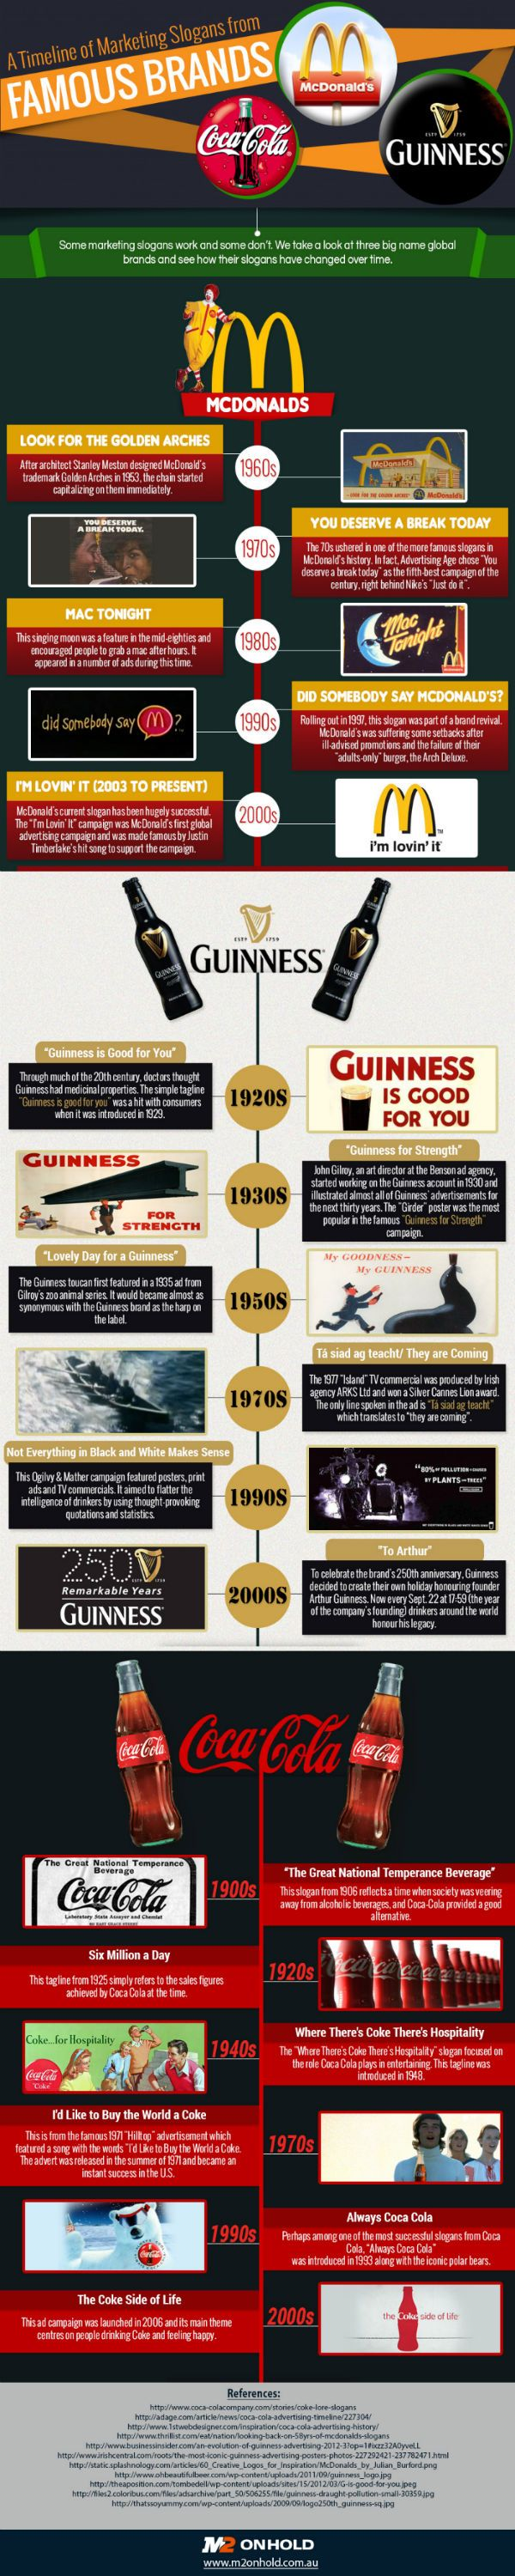 Infographic: Timeline of marketing slogans from three famous brands